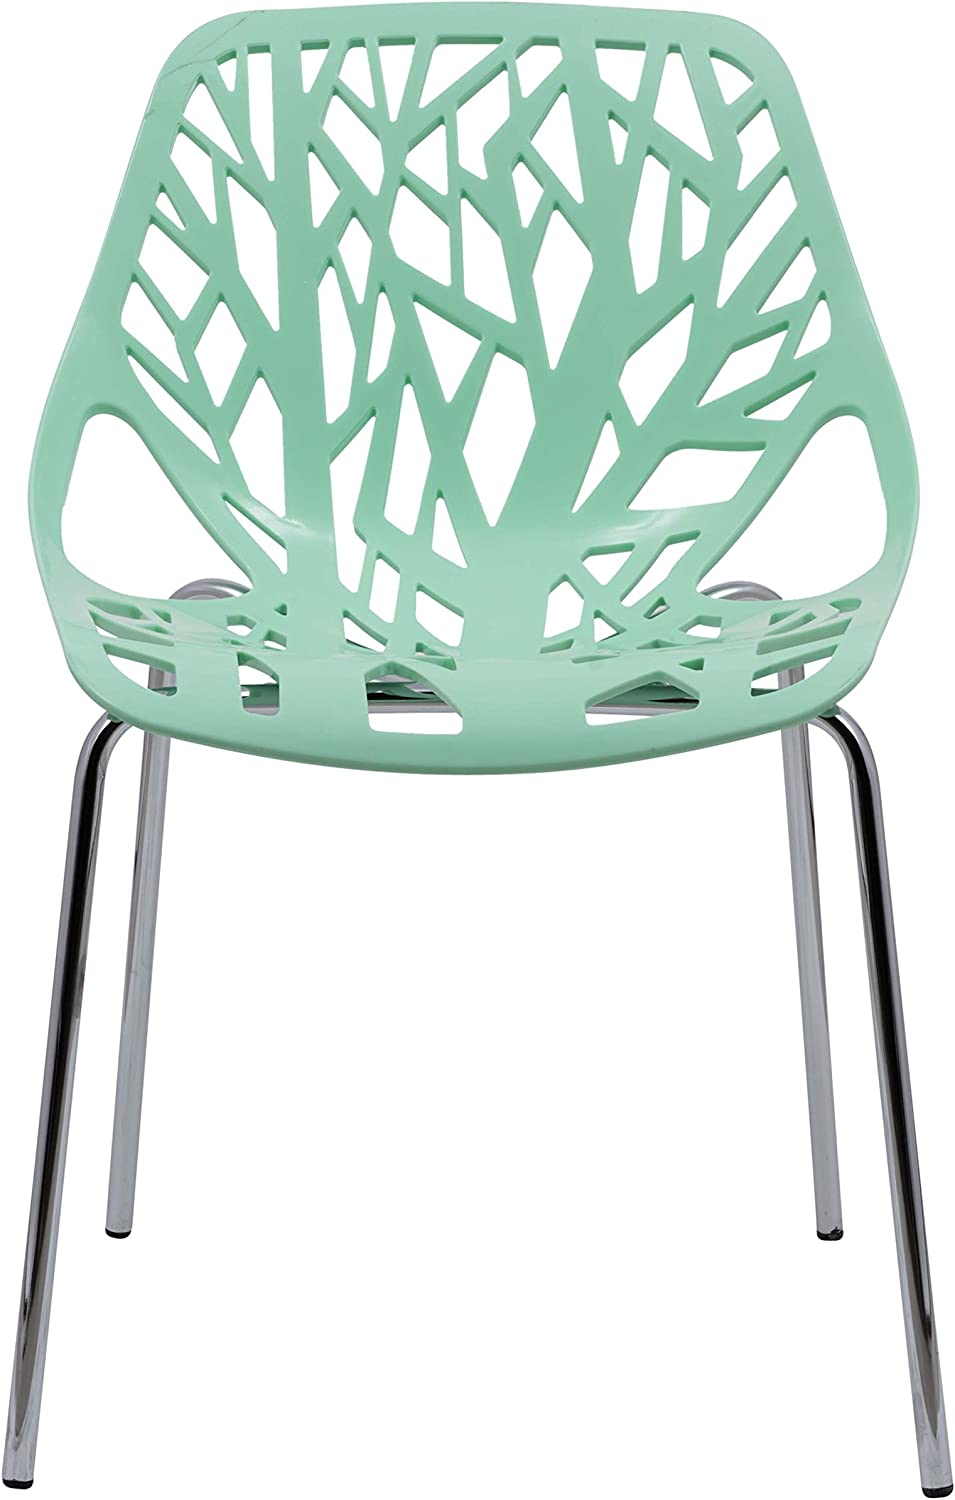 LeisureMod Modern Asbury Dining Chair with Chromed Legs, Mint